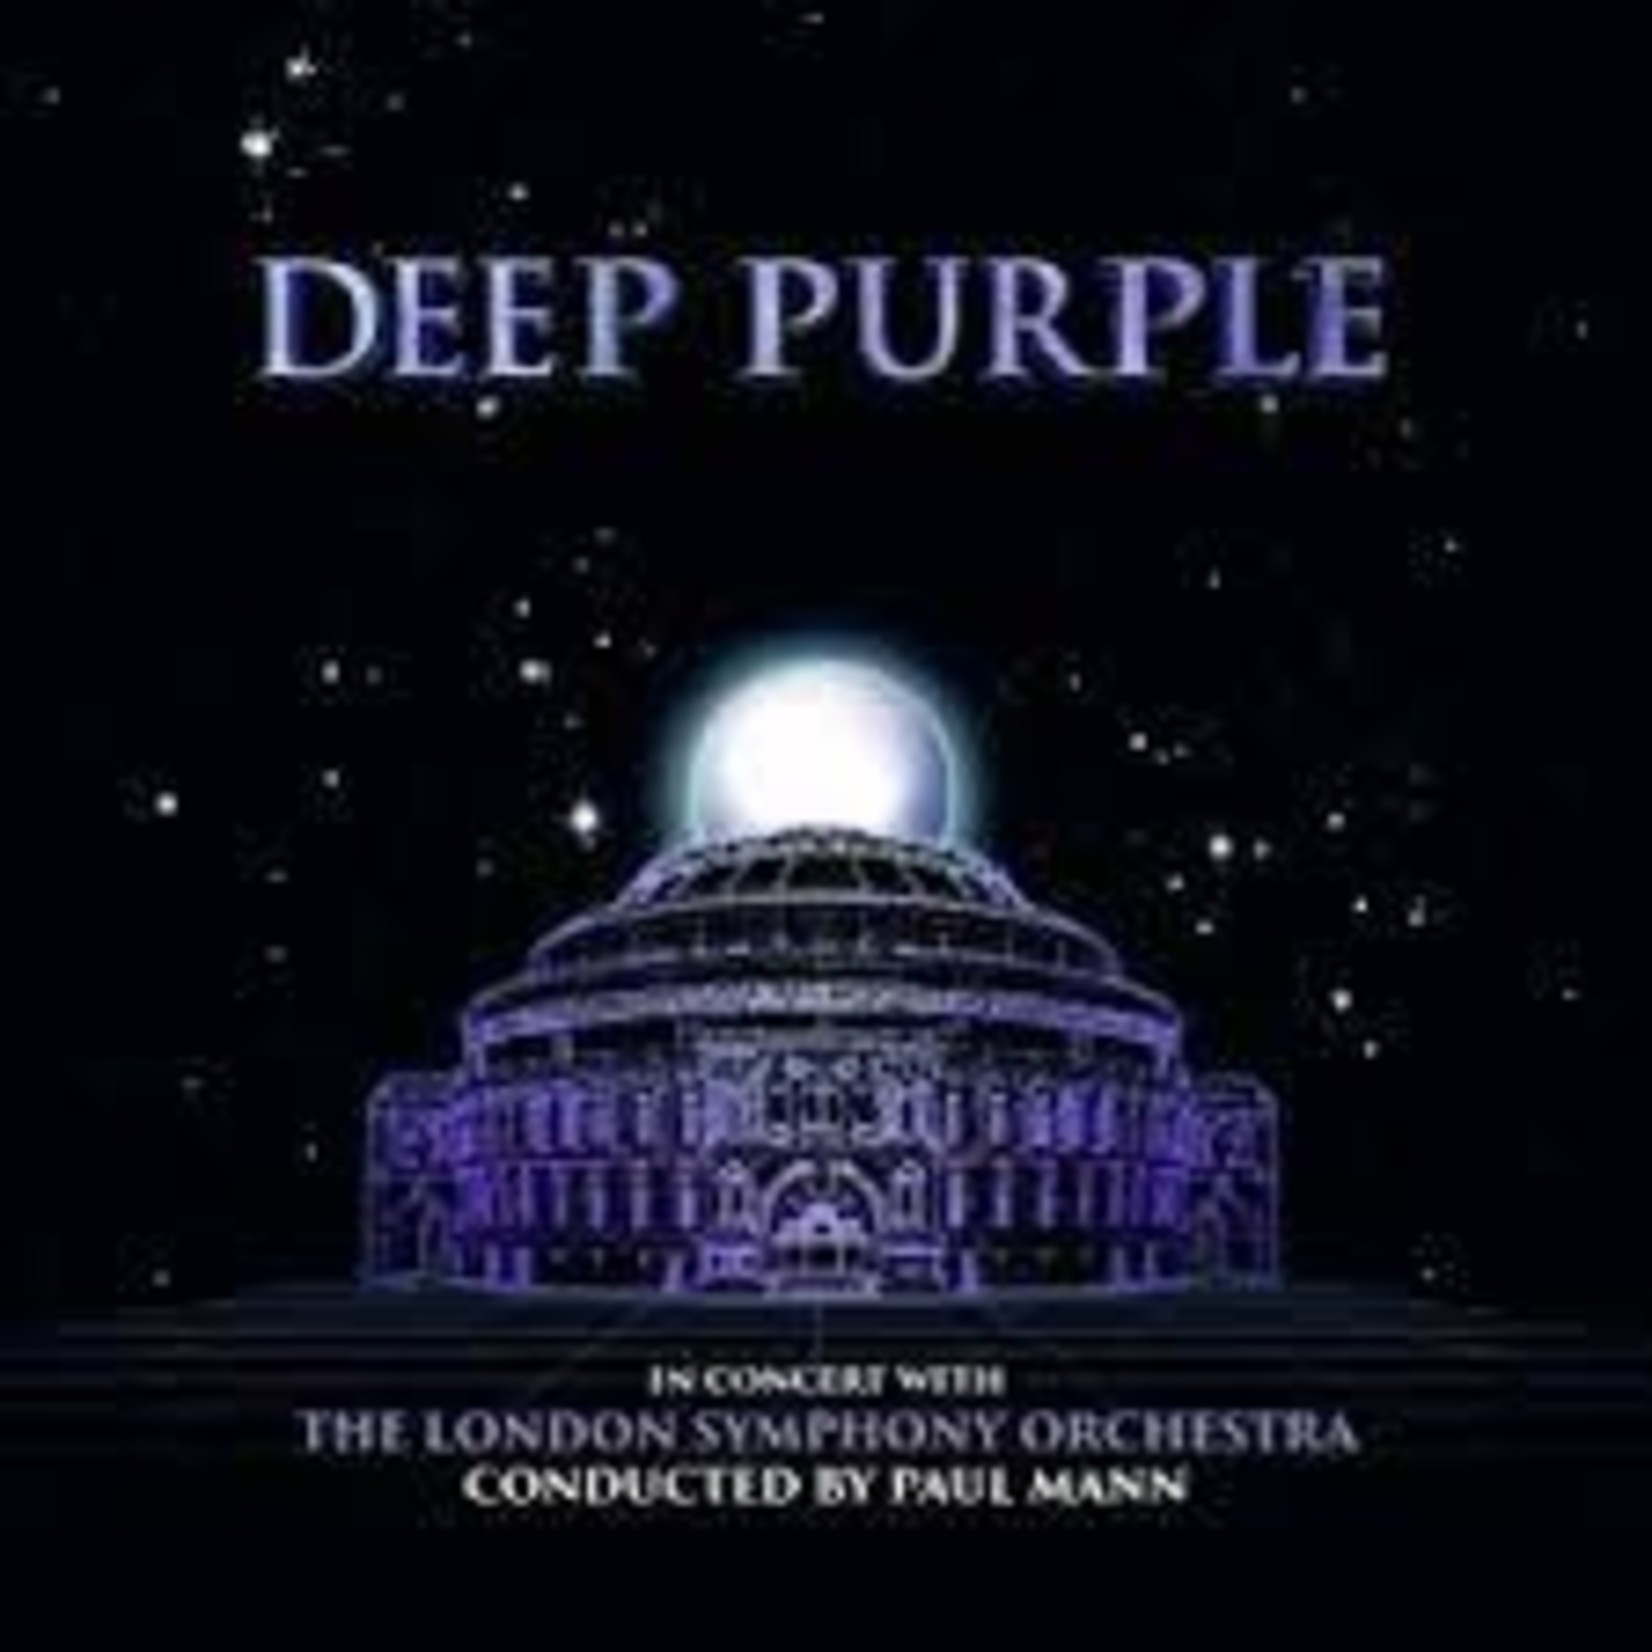 DEEP PURPLE - IN CONCERT WITH LONDON SYMPHONY ORCHESTRA 3LP (VINYL)